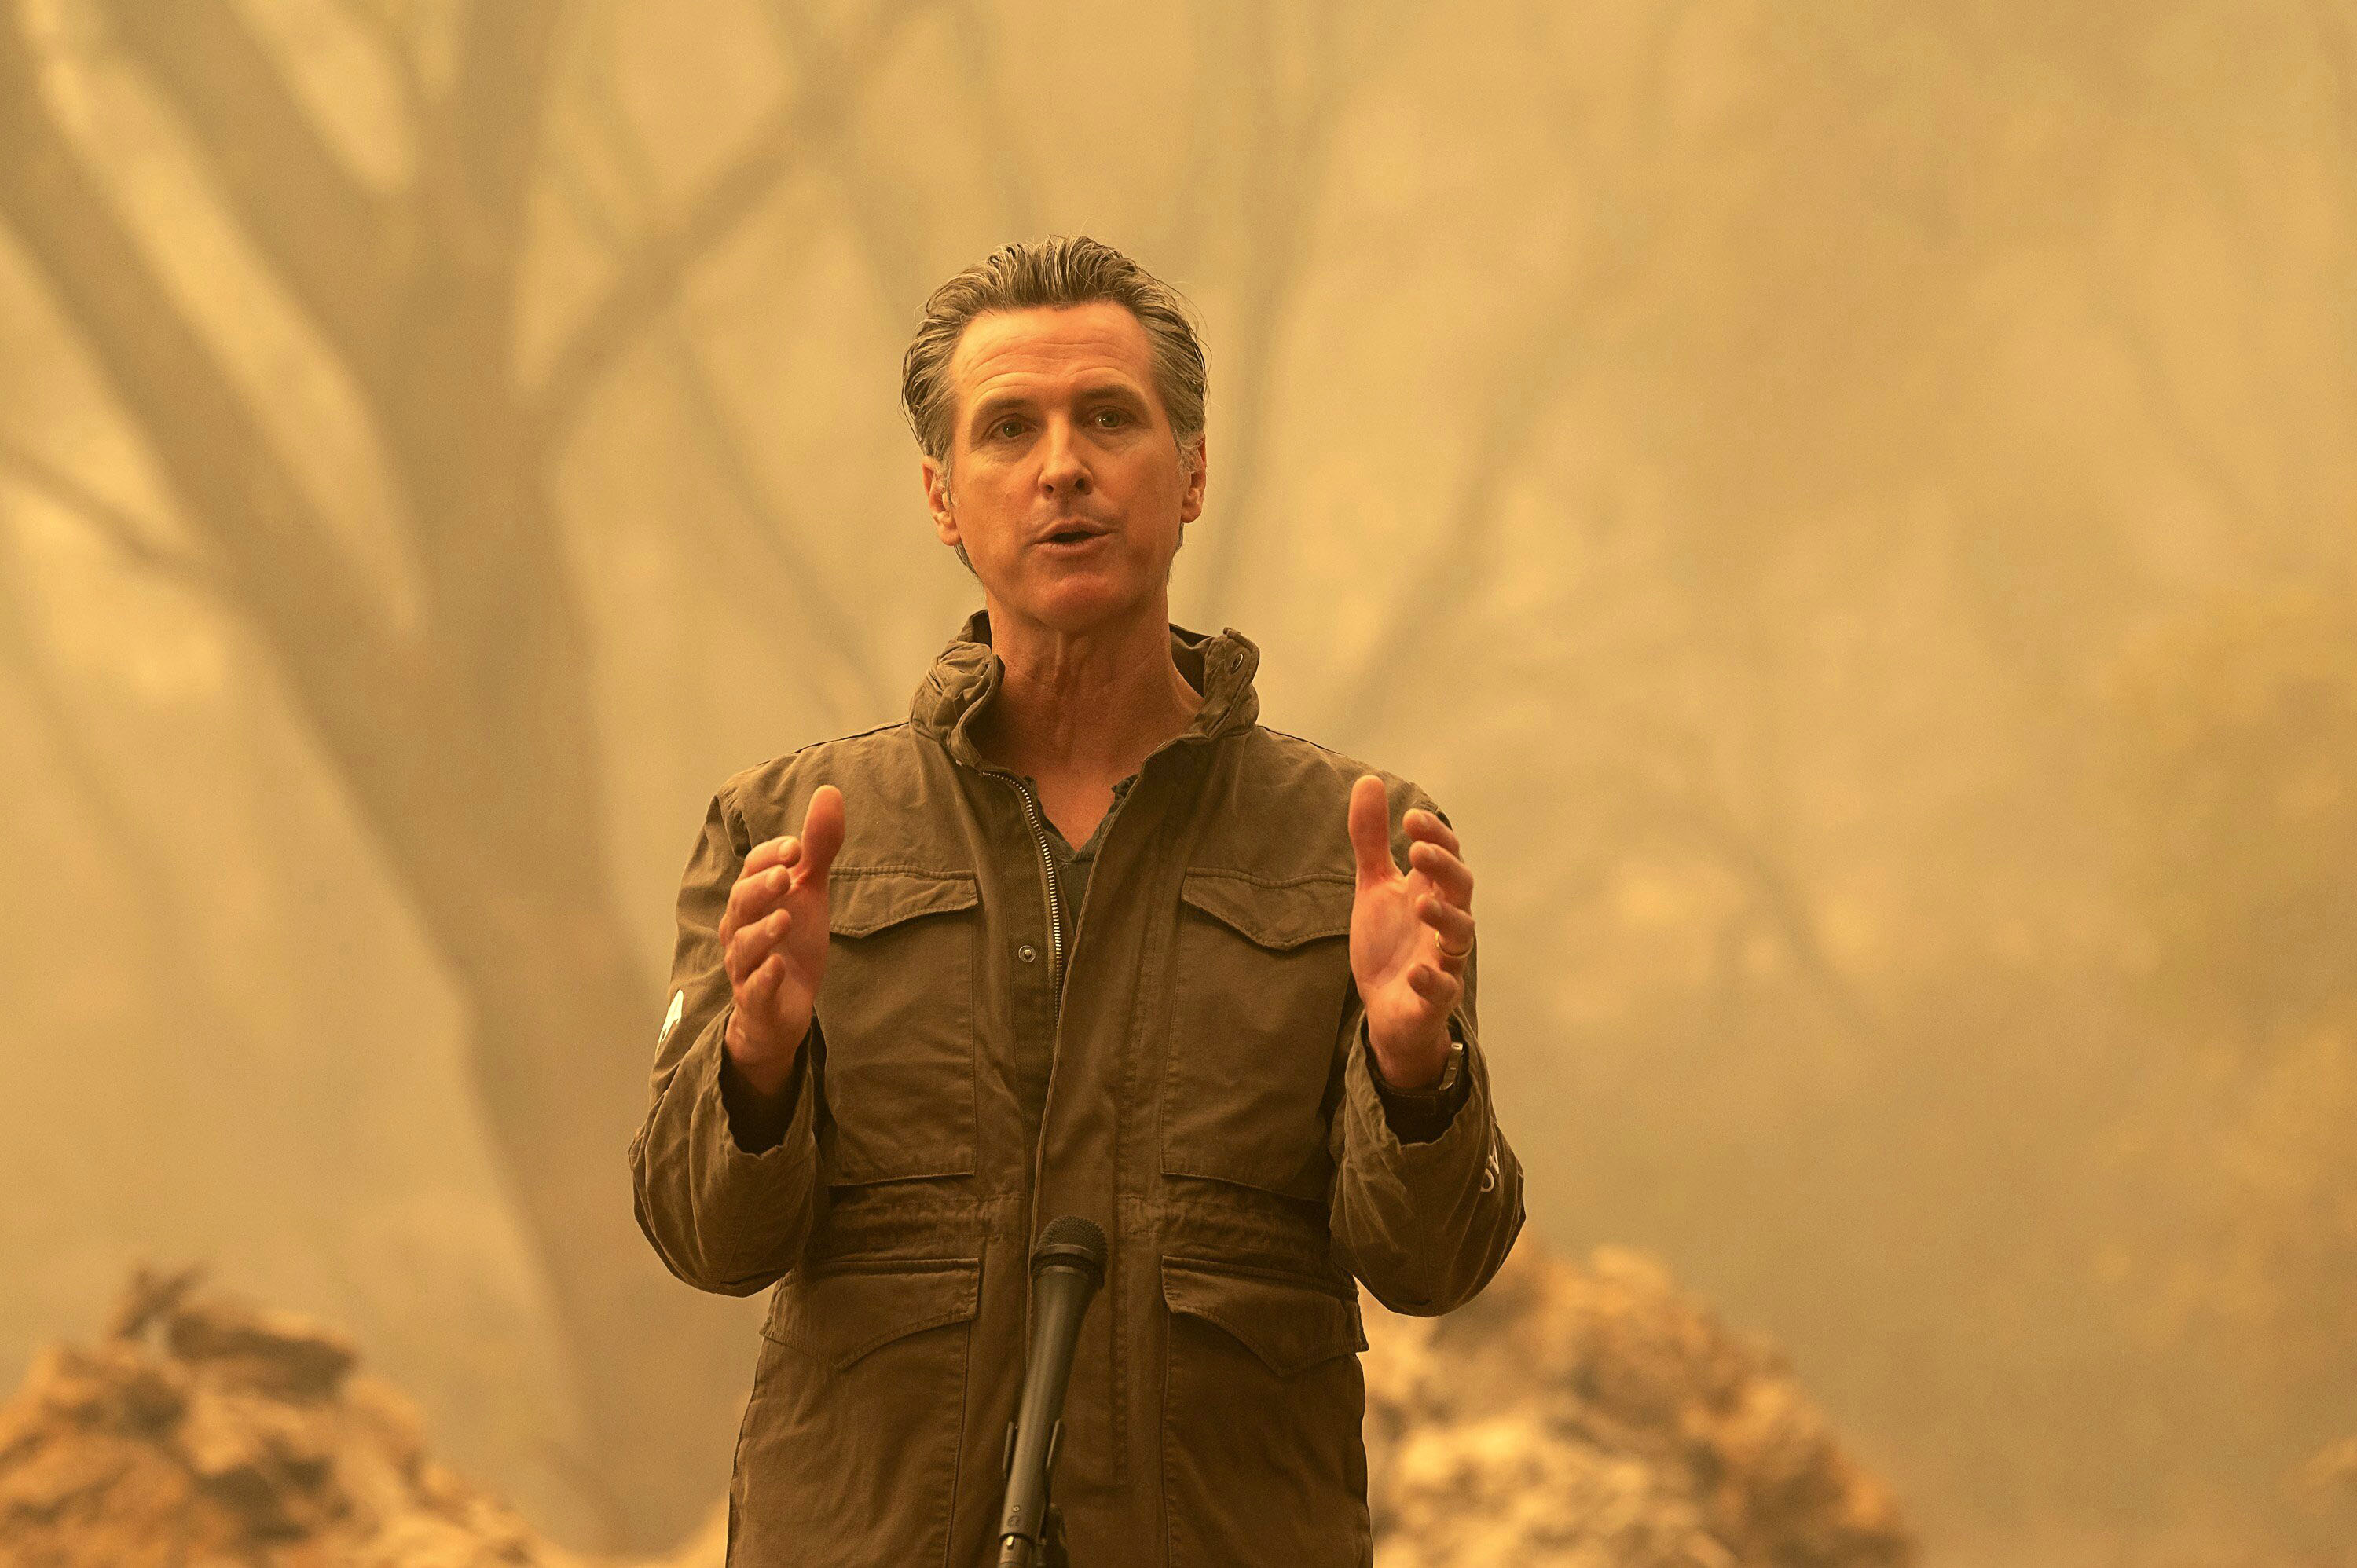 California Gov. Gavin Newsom speaks to the media outside of Oroville, California, after viewing the North Complex Fire zone on September 11.